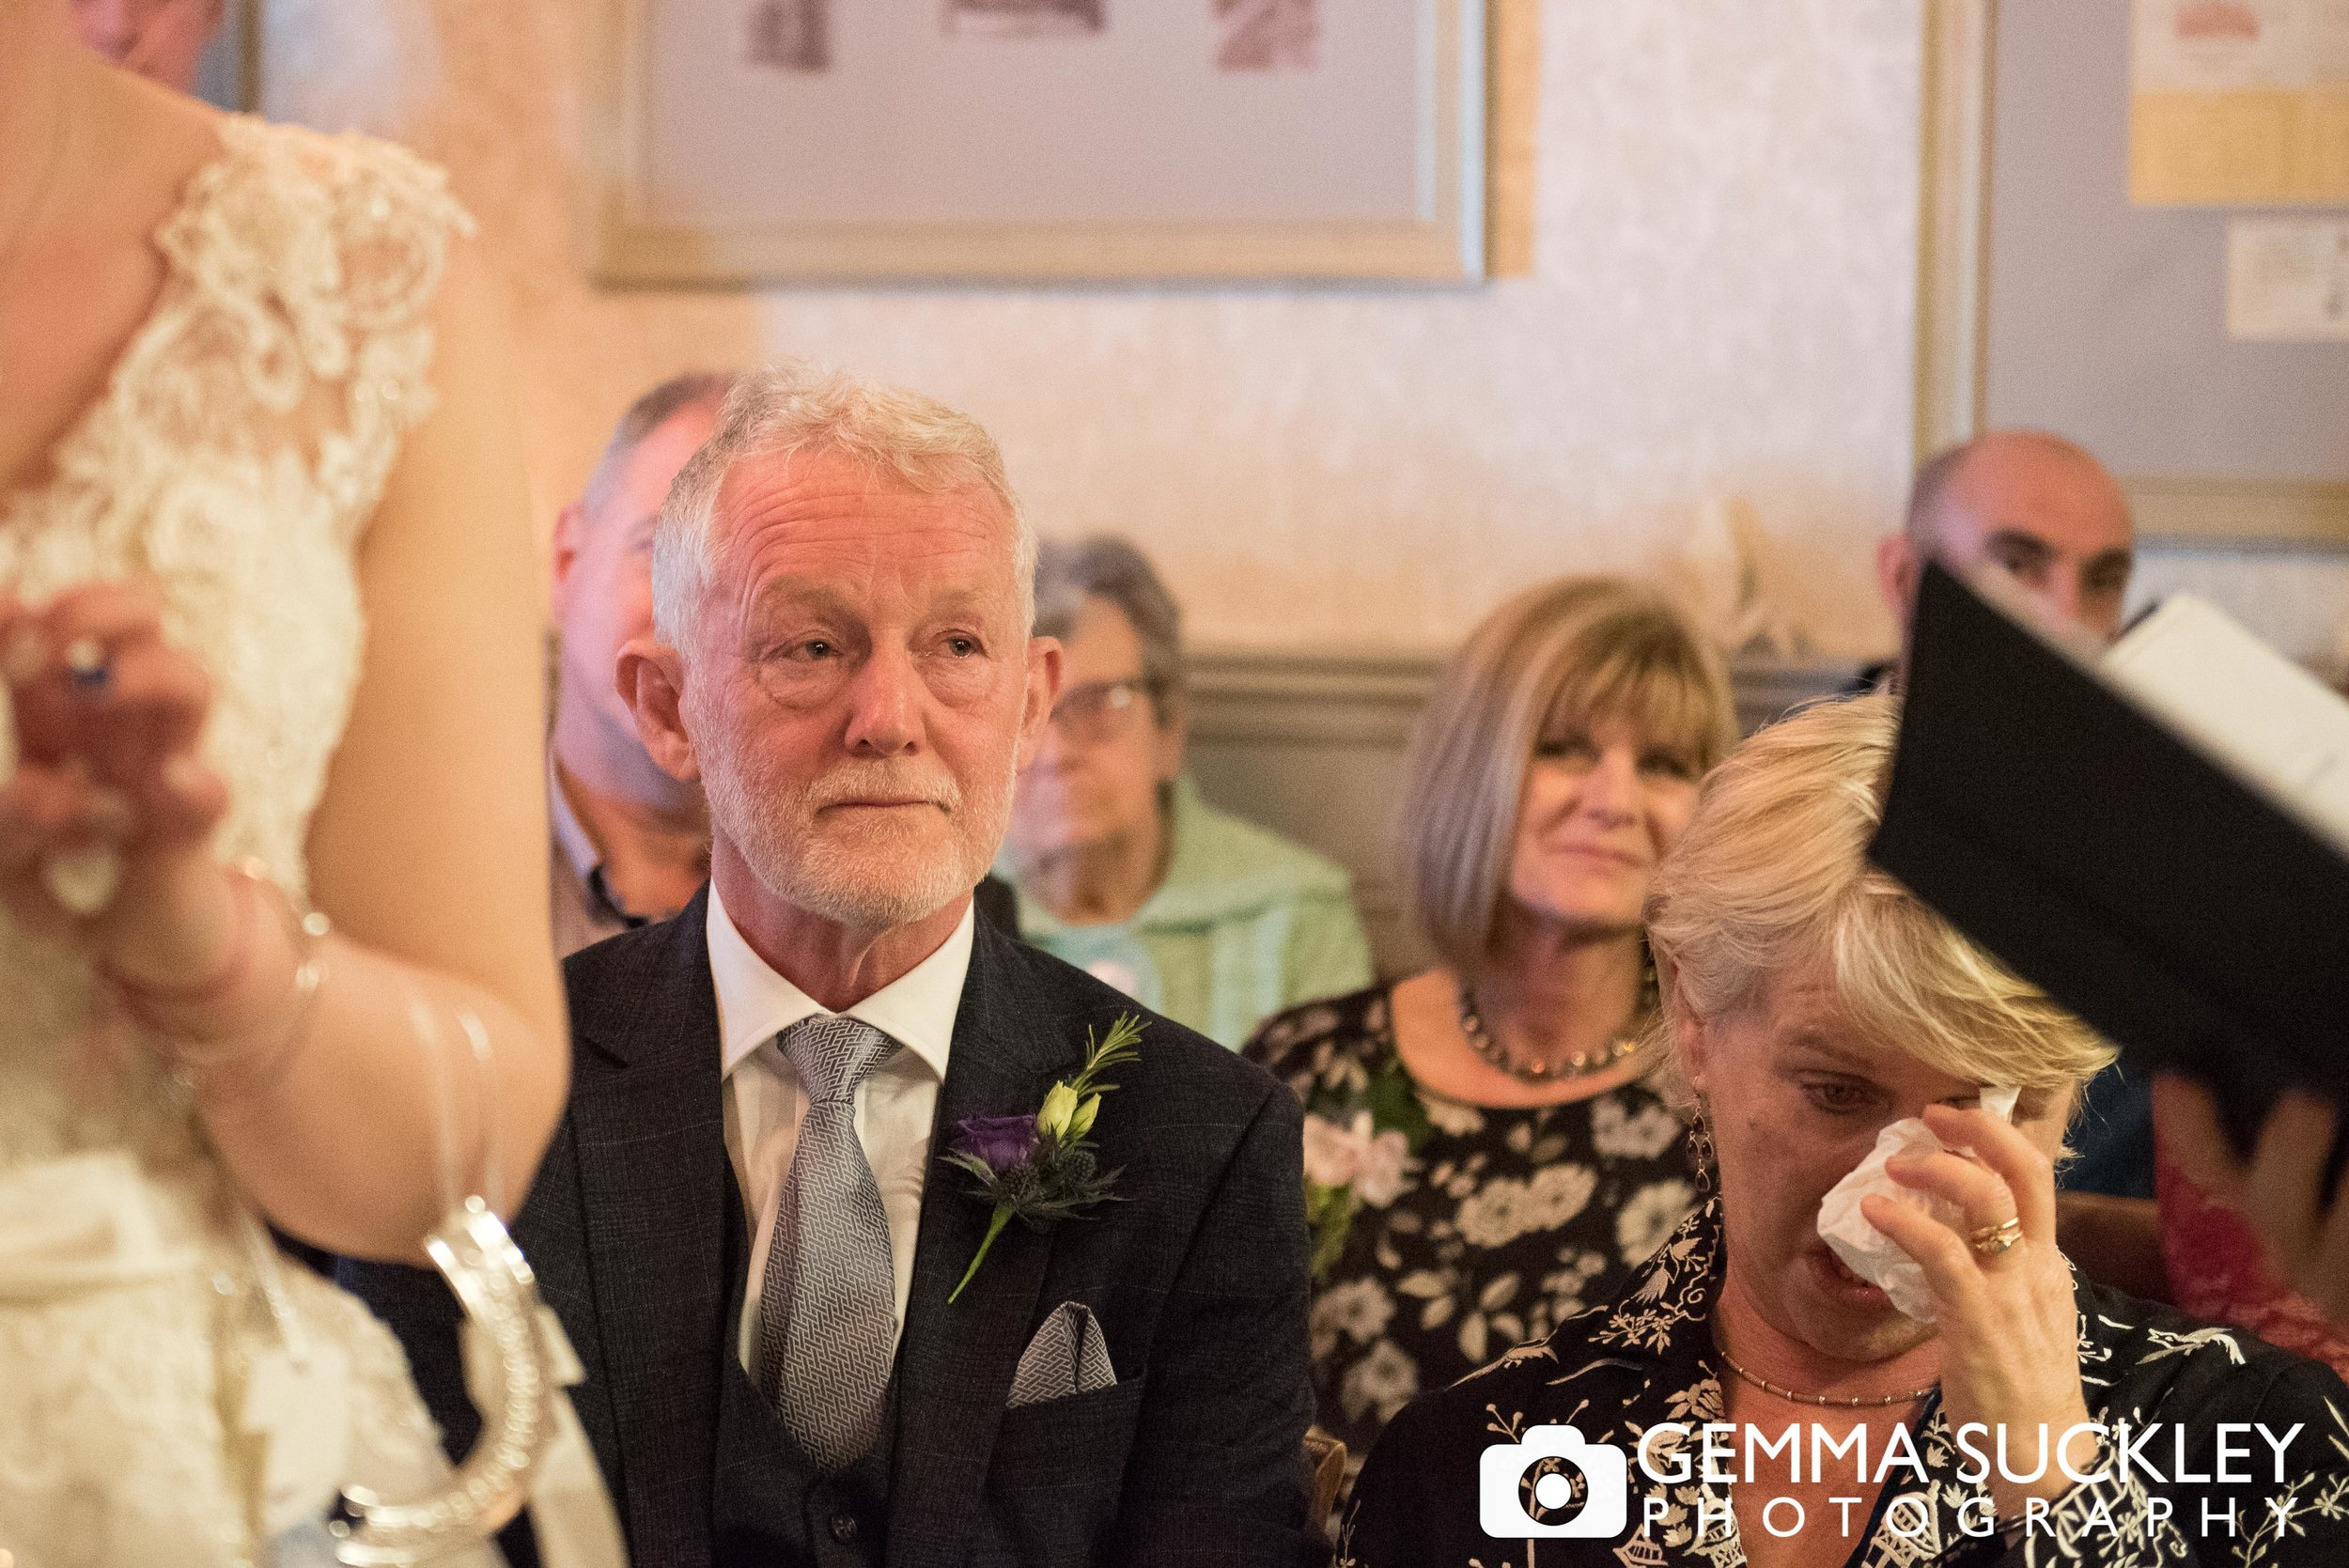 emotional wedding guests during wedding ceremony at grassington house